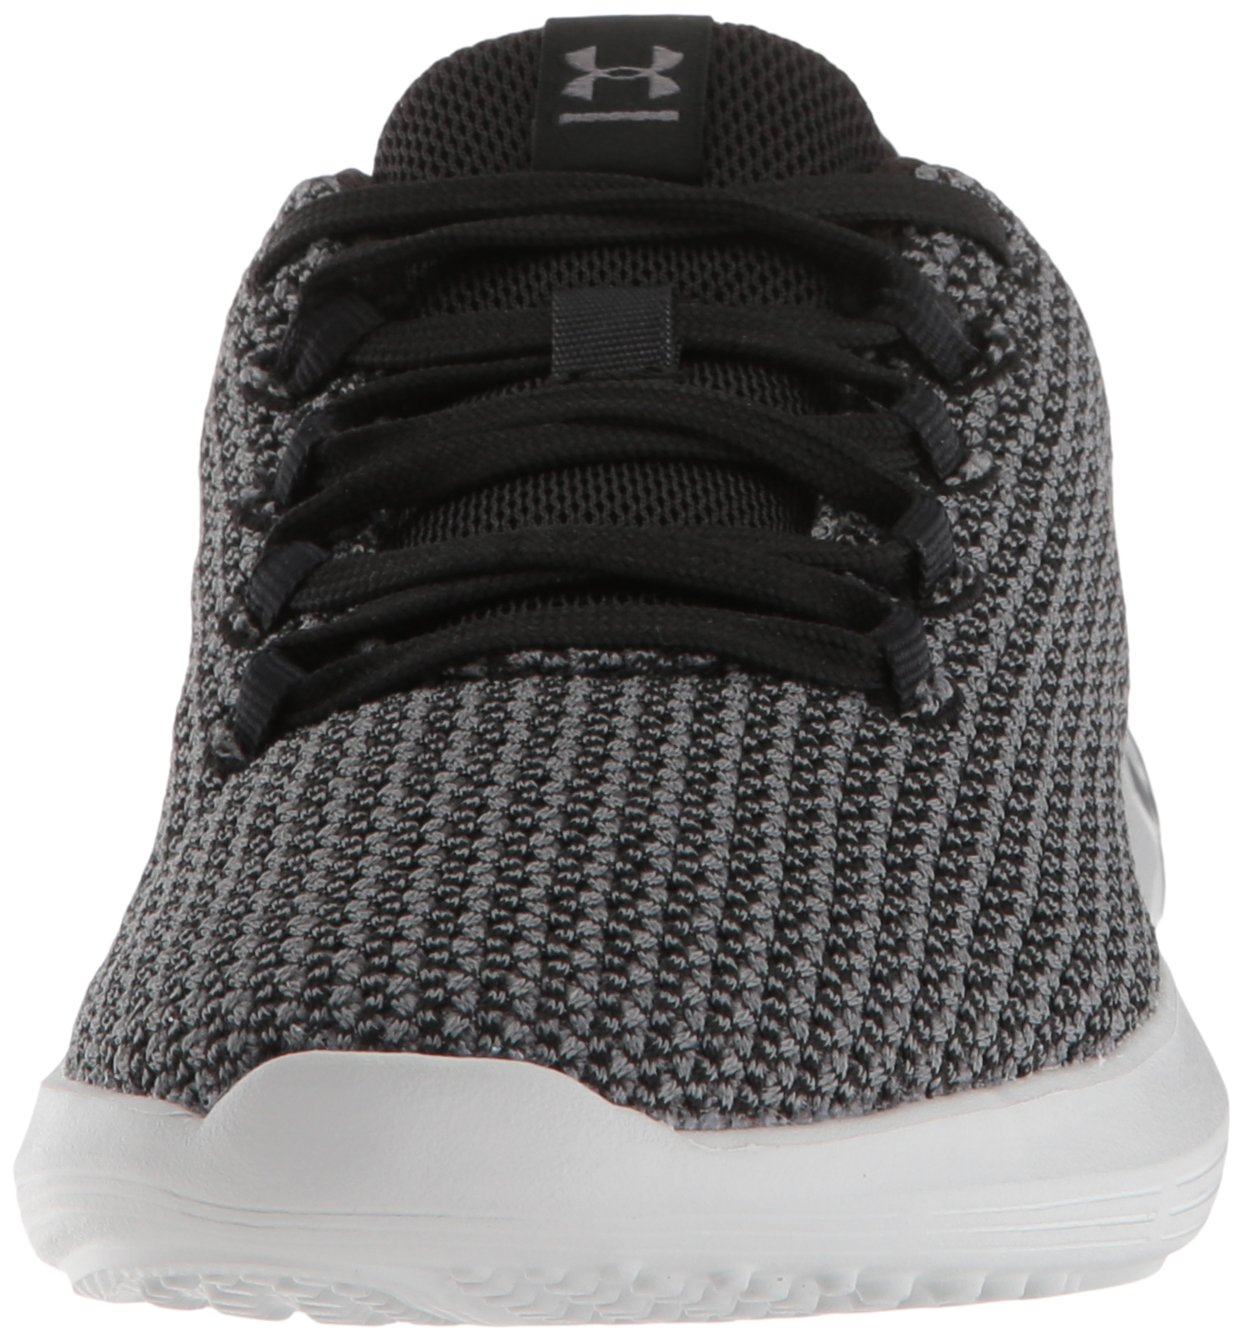 71 LtOR95wL - Under Armour Women's's Ripple Competition Running Shoes